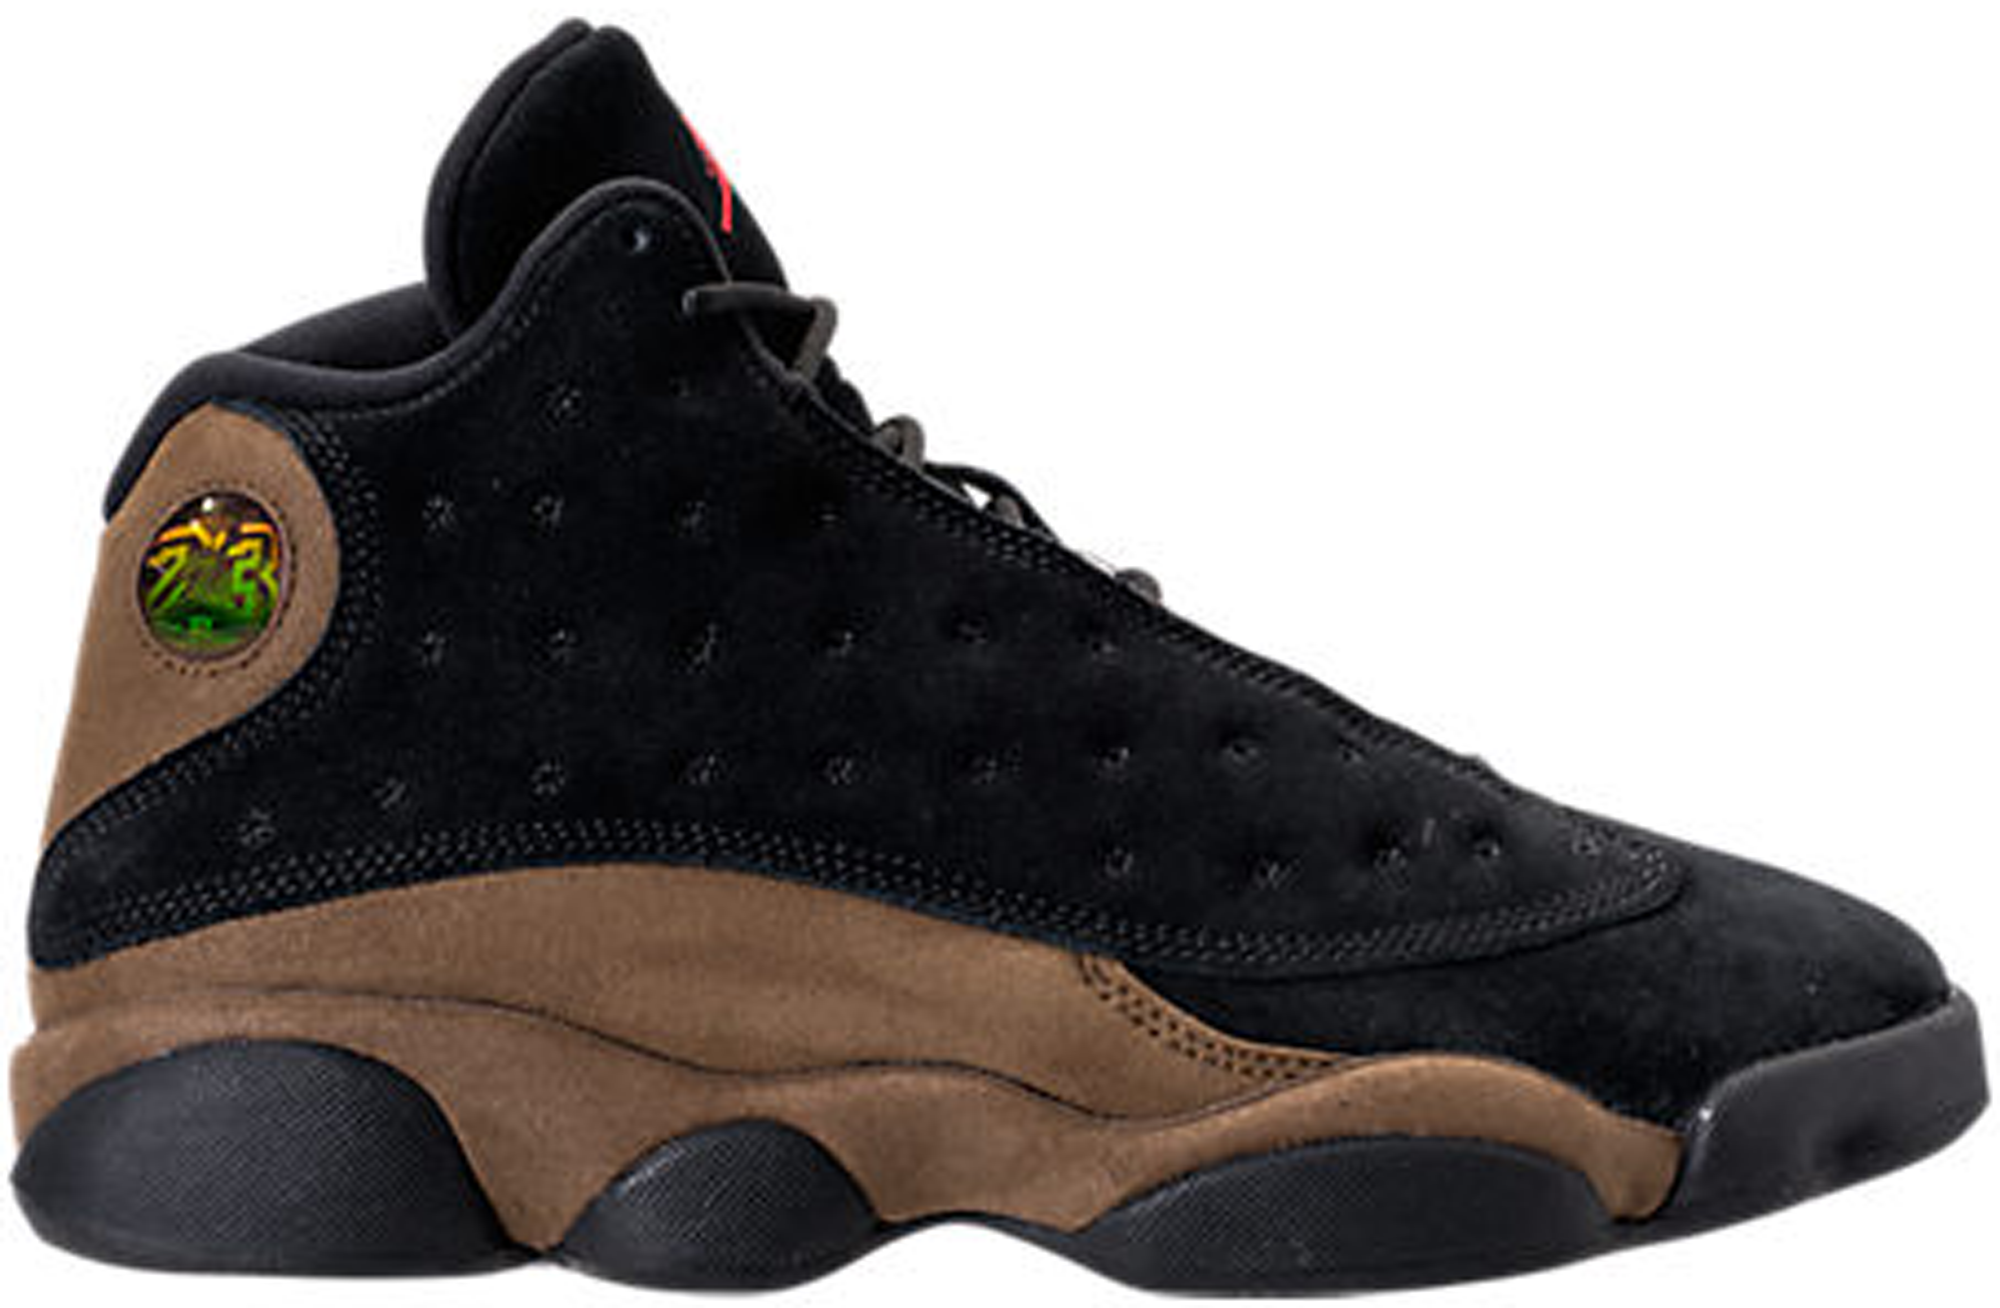 best sneakers e08b0 d407d Air Jordan 13 Olive Retro - StockX News